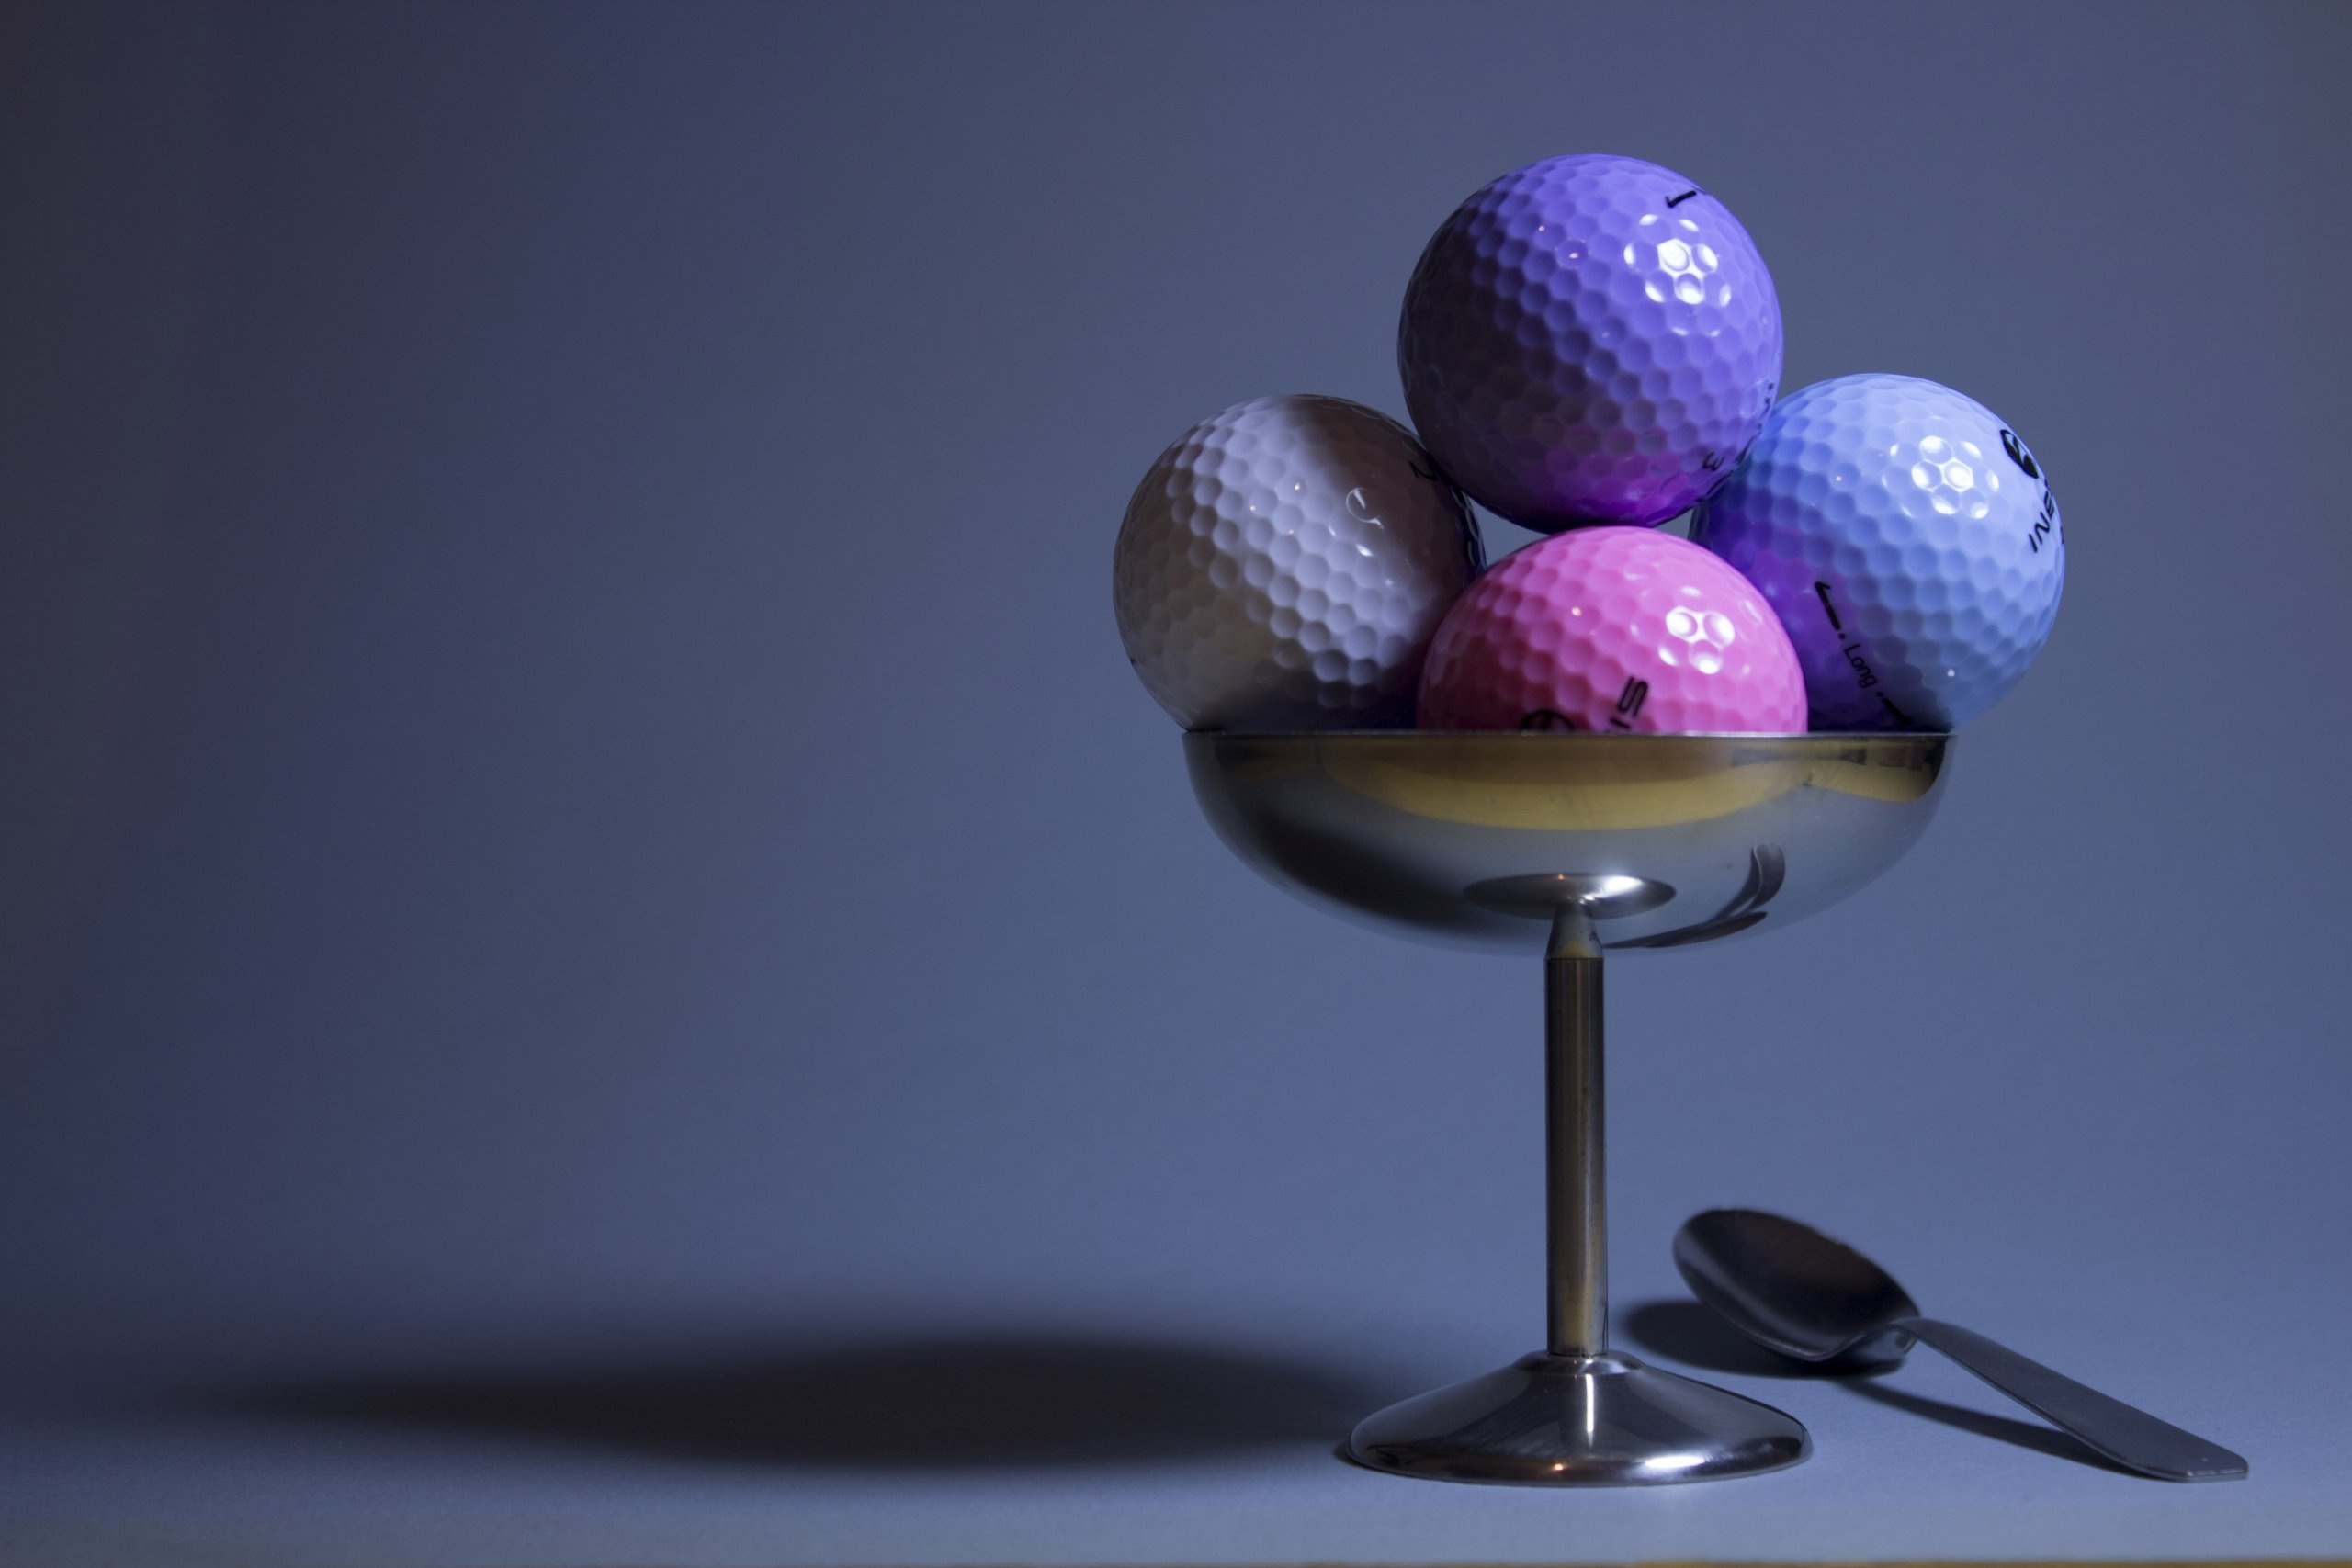 146775 download wallpaper Food, Golf, Miscellanea, Miscellaneous, Imitation, Golf Balls screensavers and pictures for free